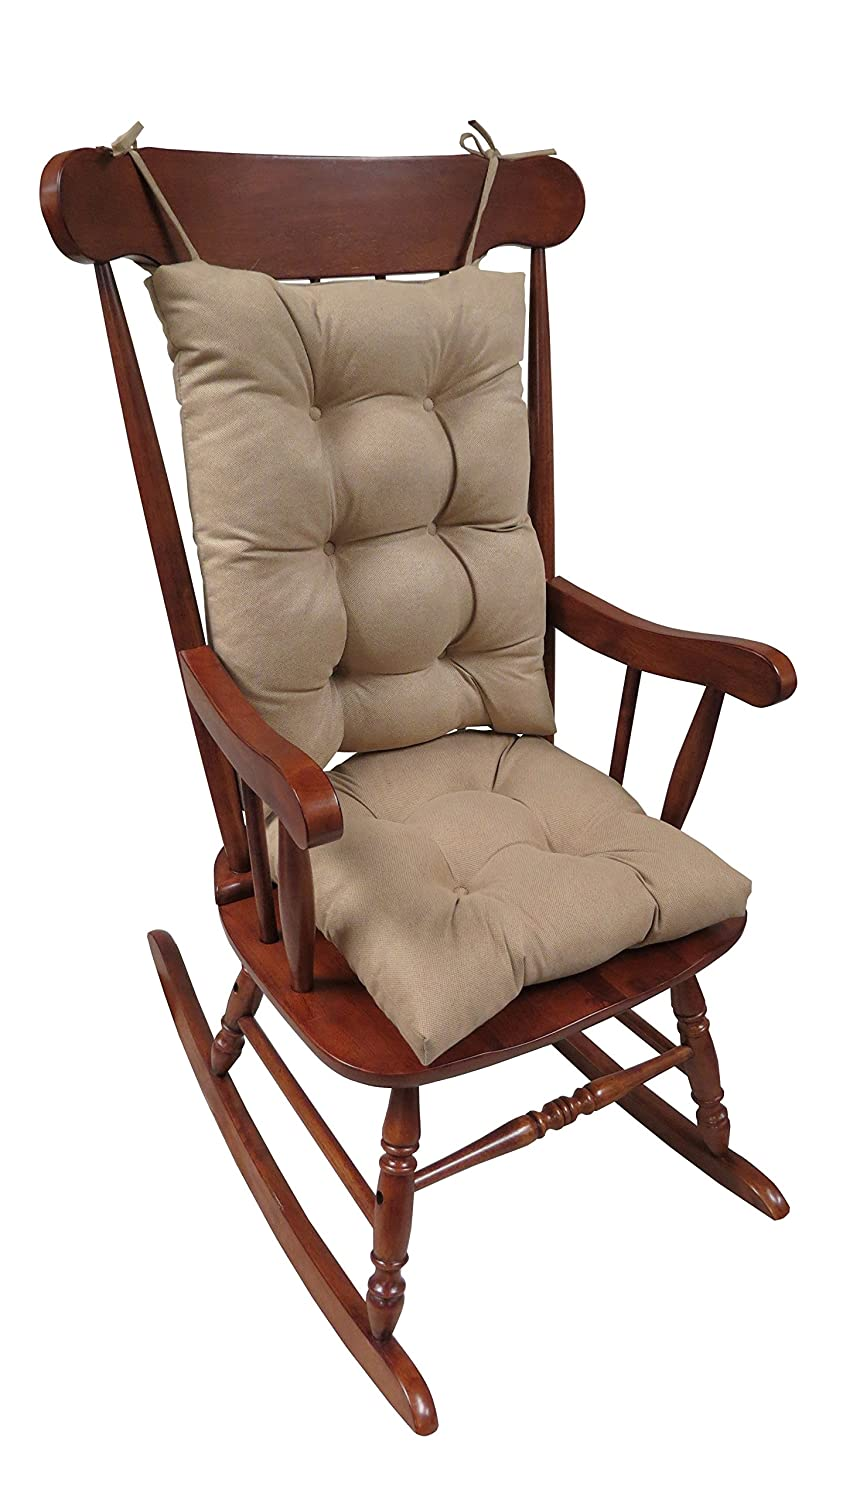 Genial Amazon.com: Klear Vu The Gripper Non Slip Rocking Chair Cushion Set  Honeycomb, Tan: Home U0026 Kitchen